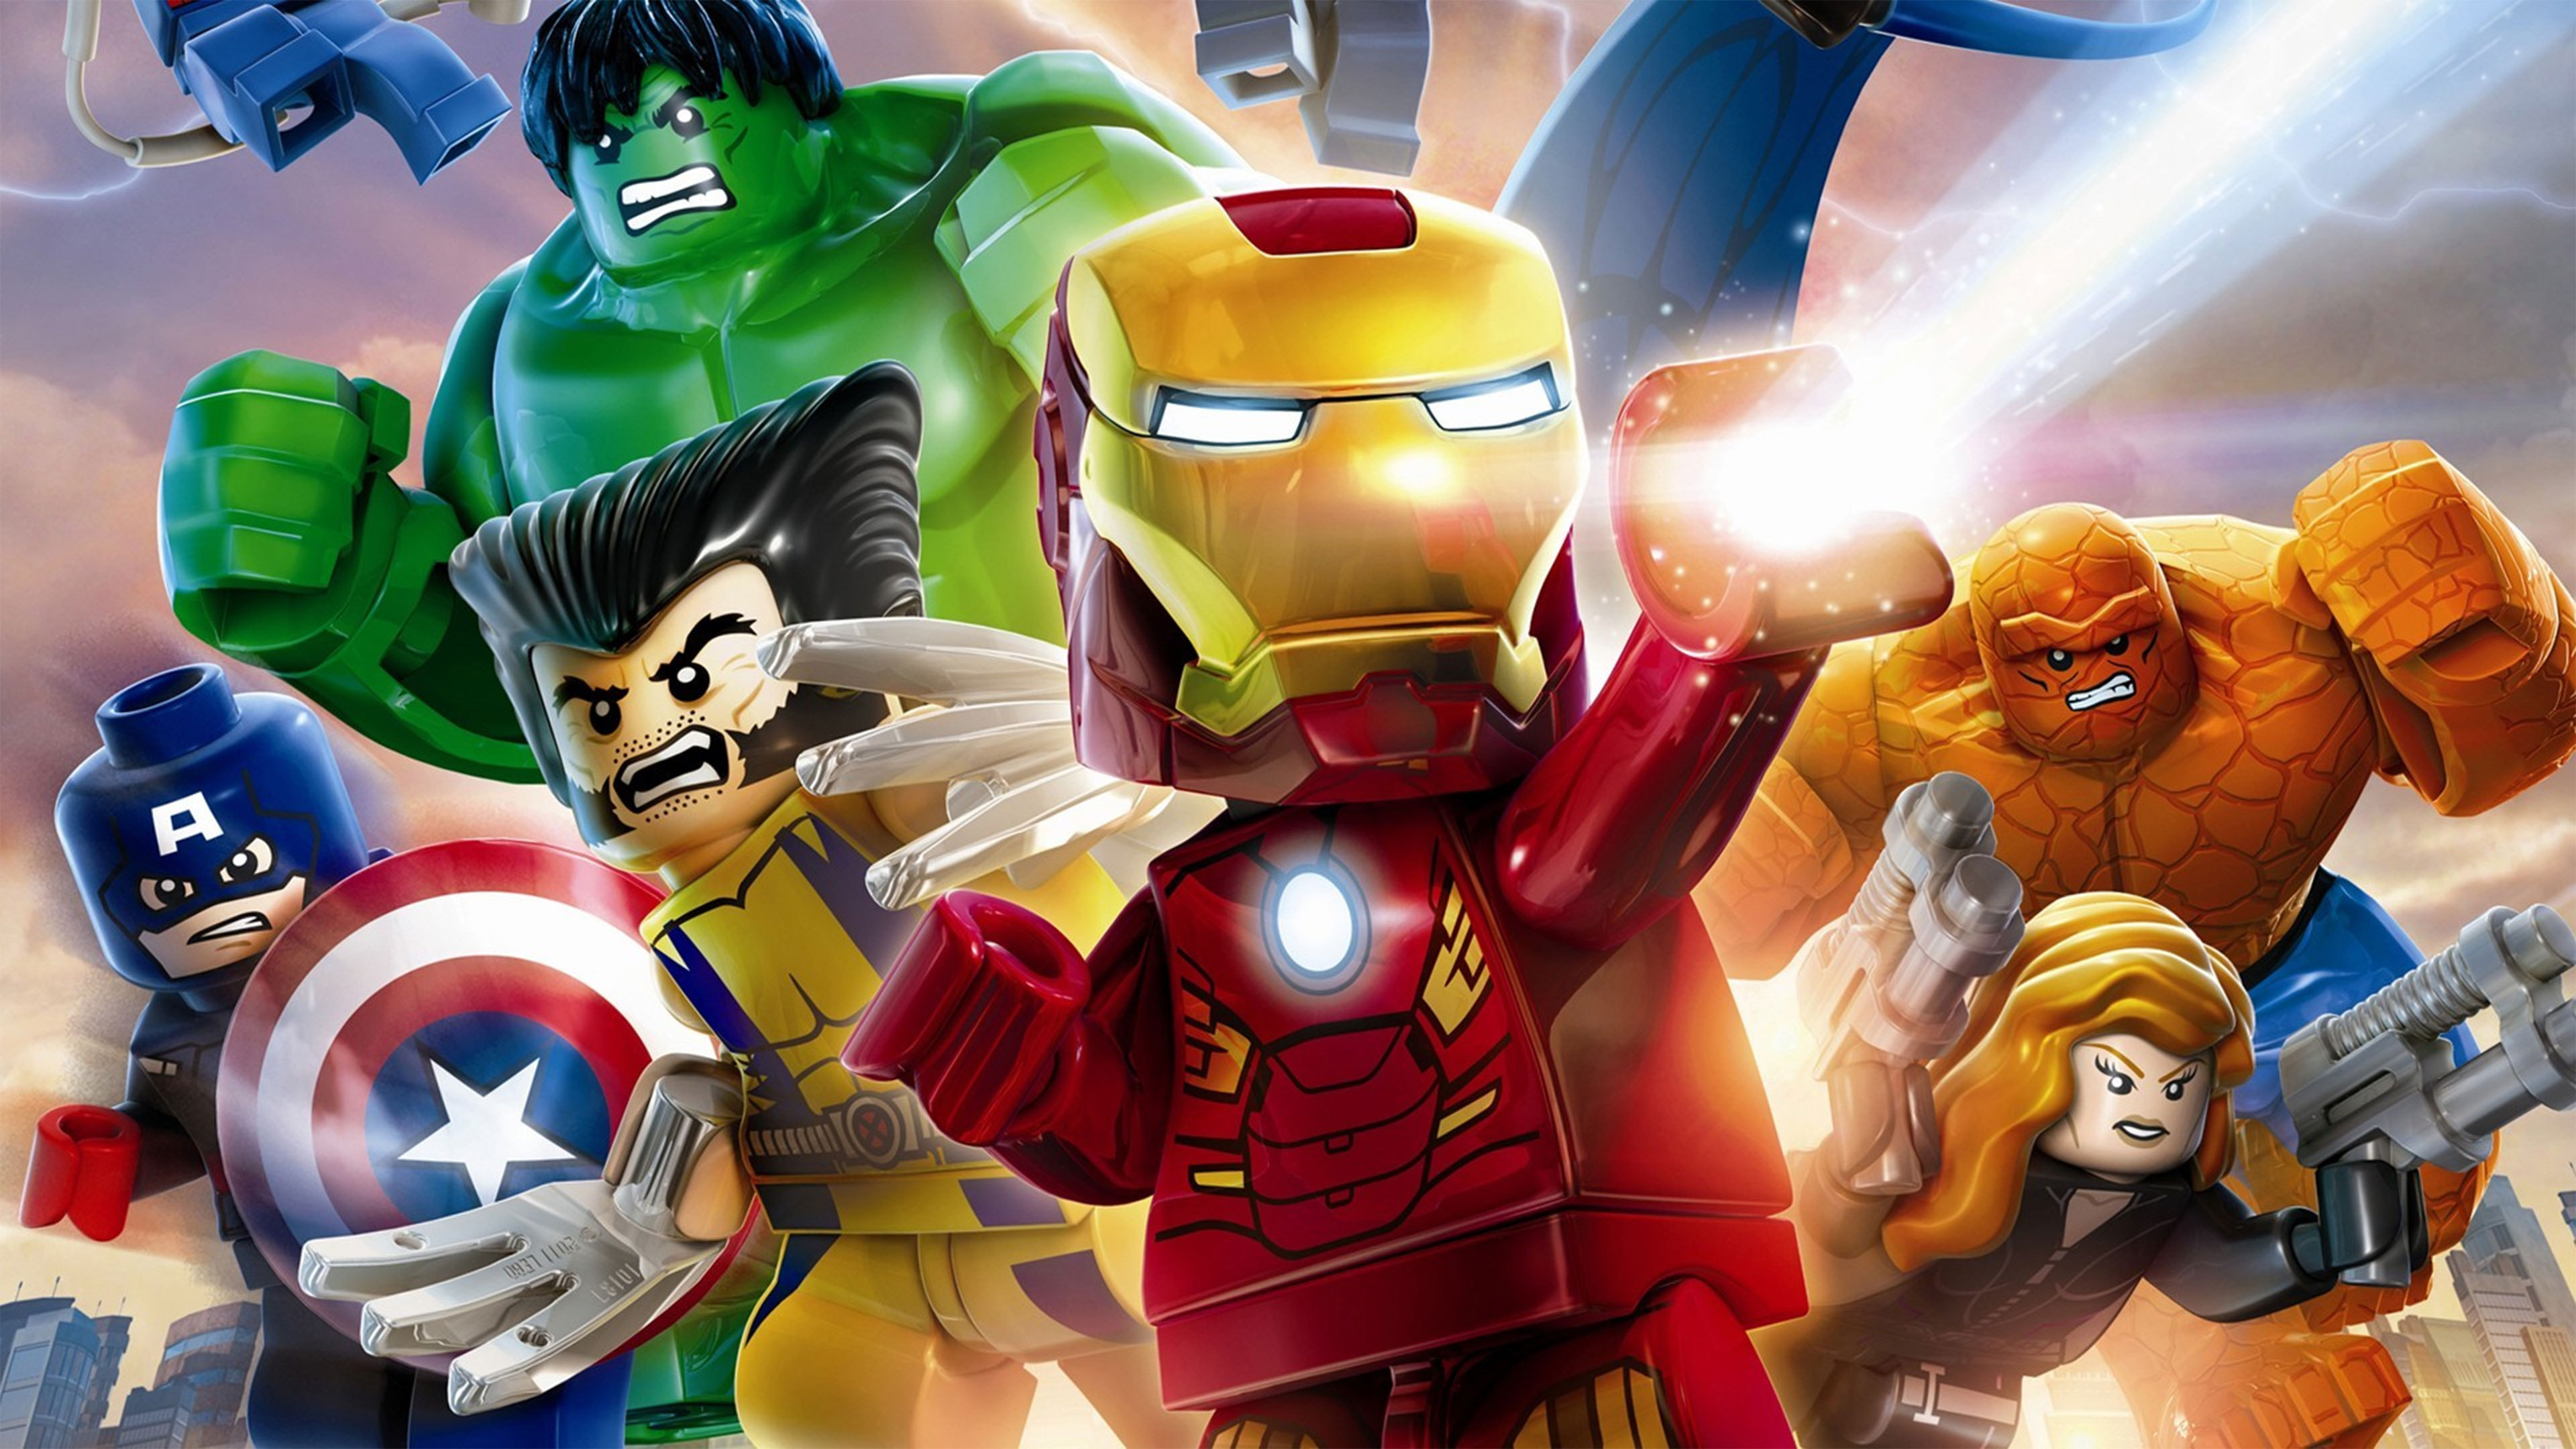 Lego Marvels Avengers Wallpapers in Ultra HD 4K